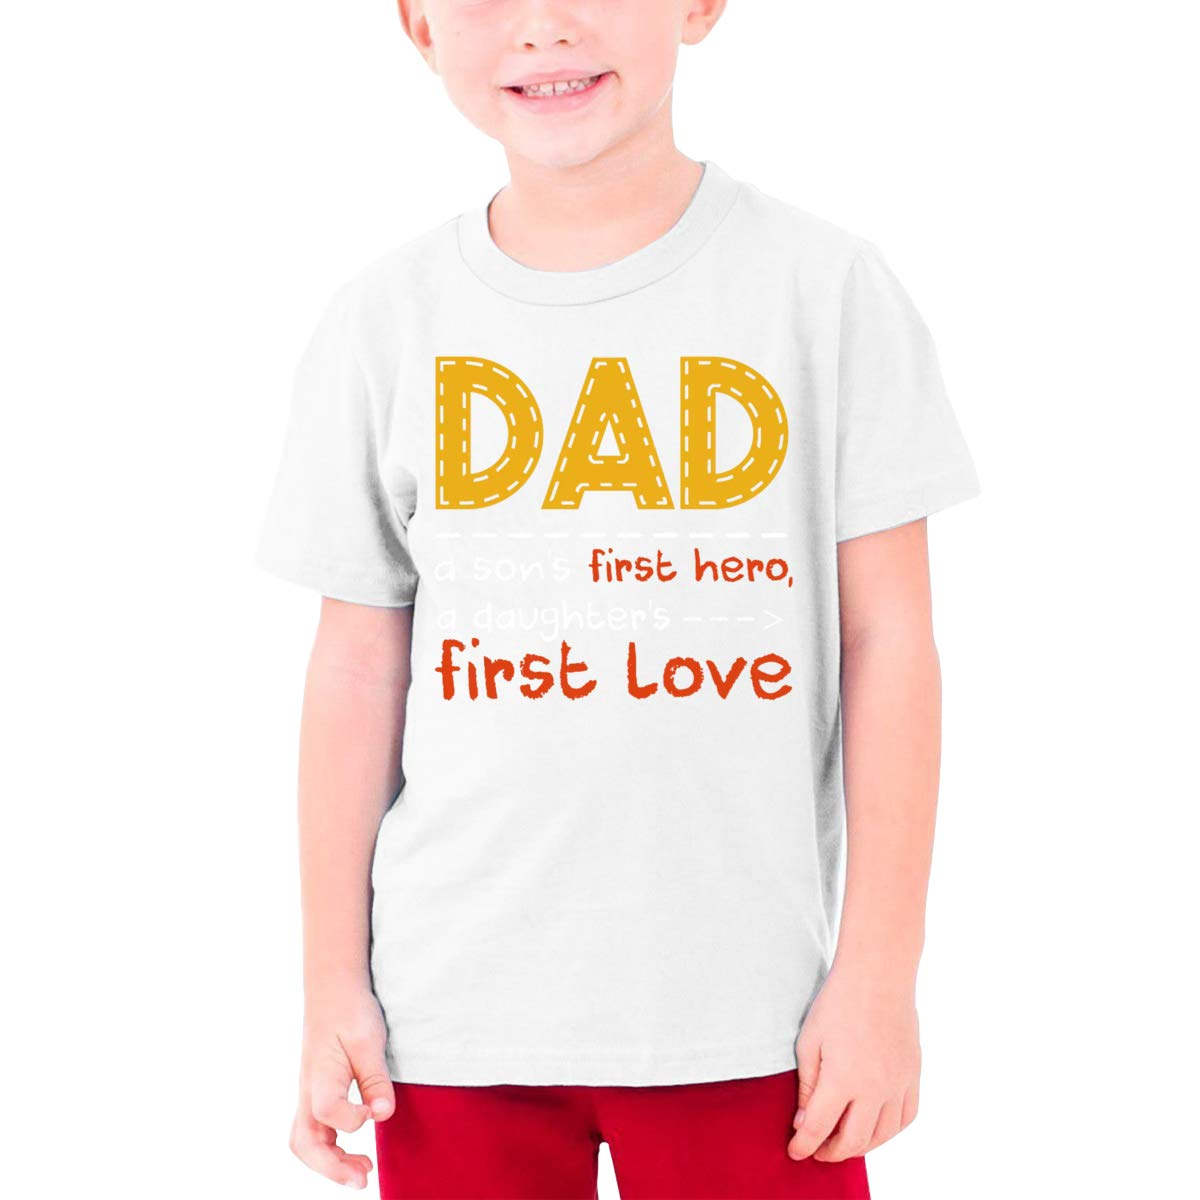 Dad A Sons First Hero A Daughters First Love Boys Short-Sleeved T-Shirt